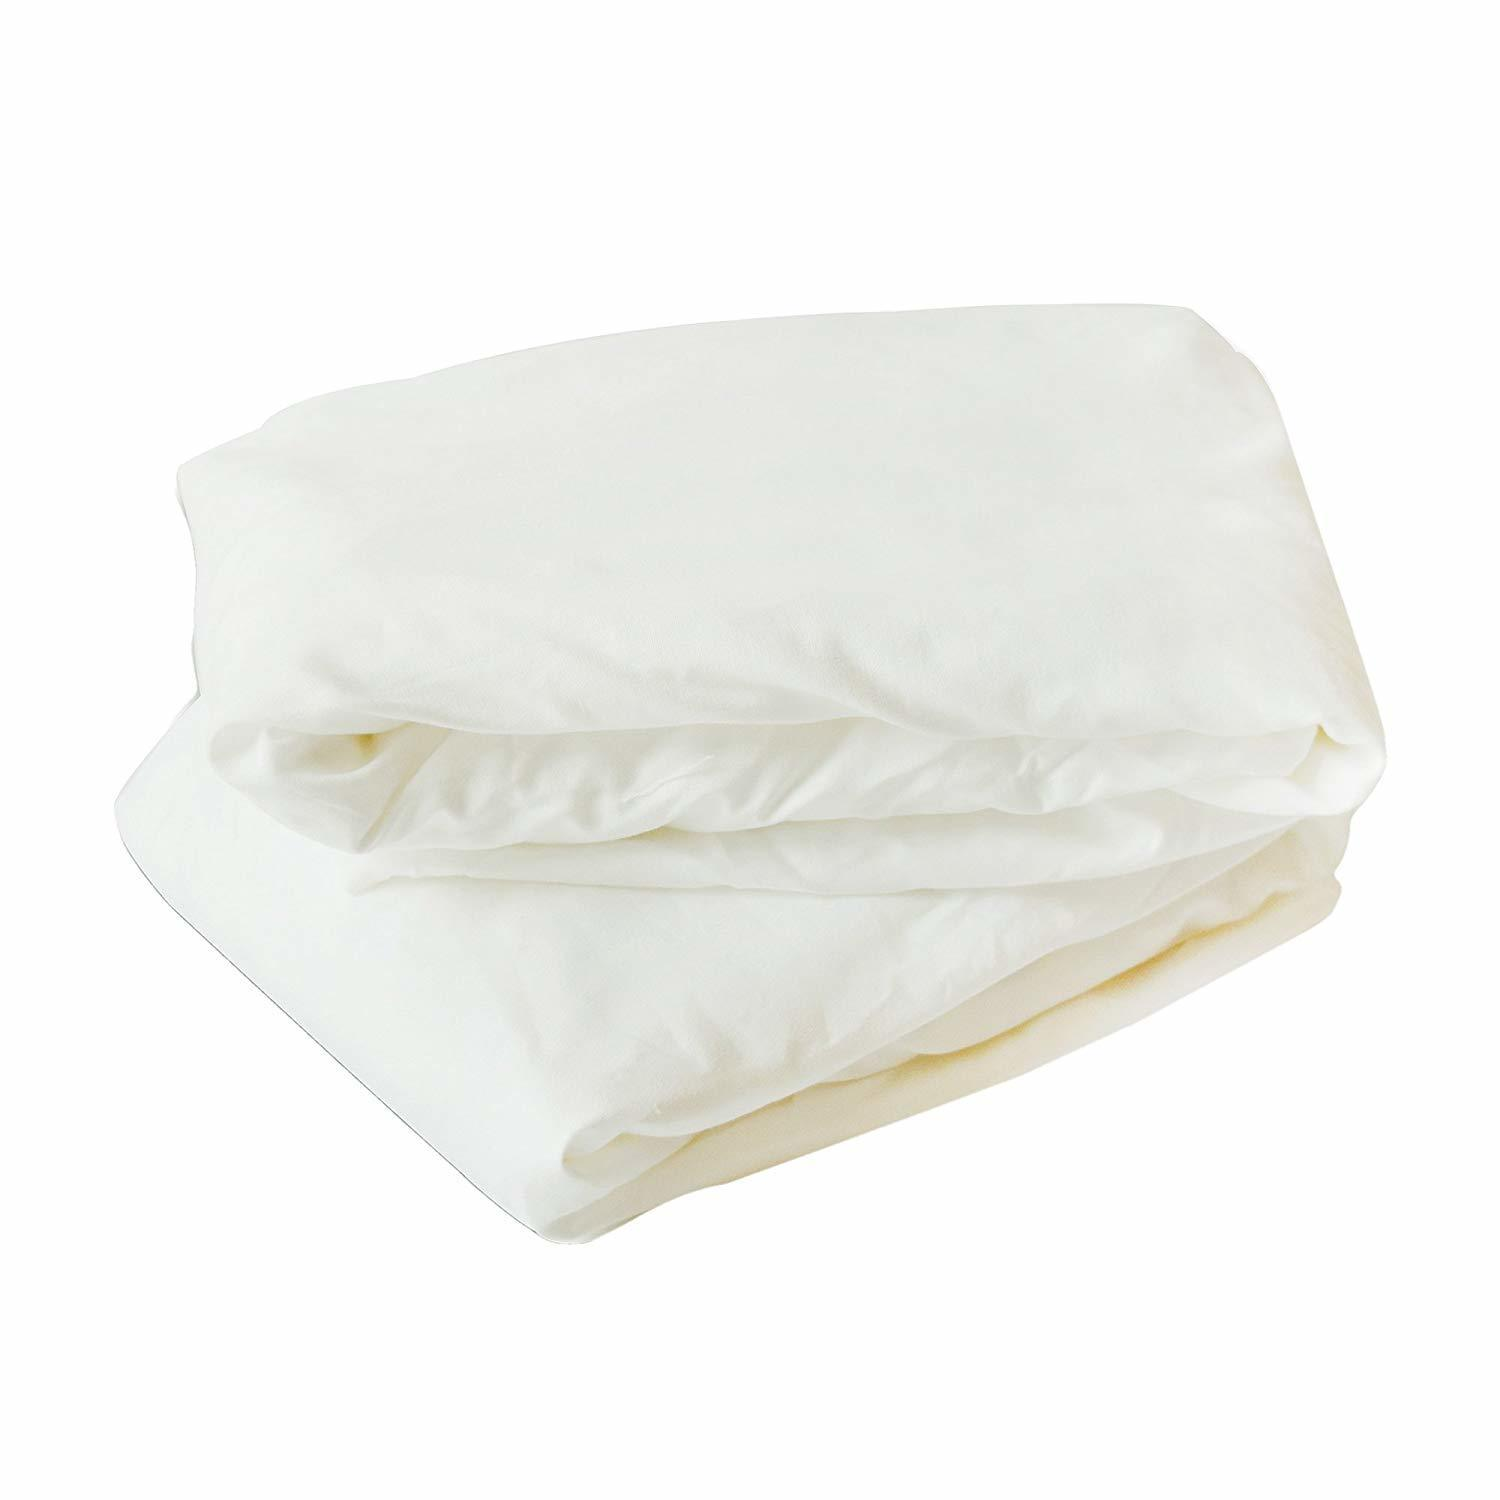 Baby Bassinet Linen Ingenuityingenuity Foldaway Rocking Bassinet Sheet 2 Pack White